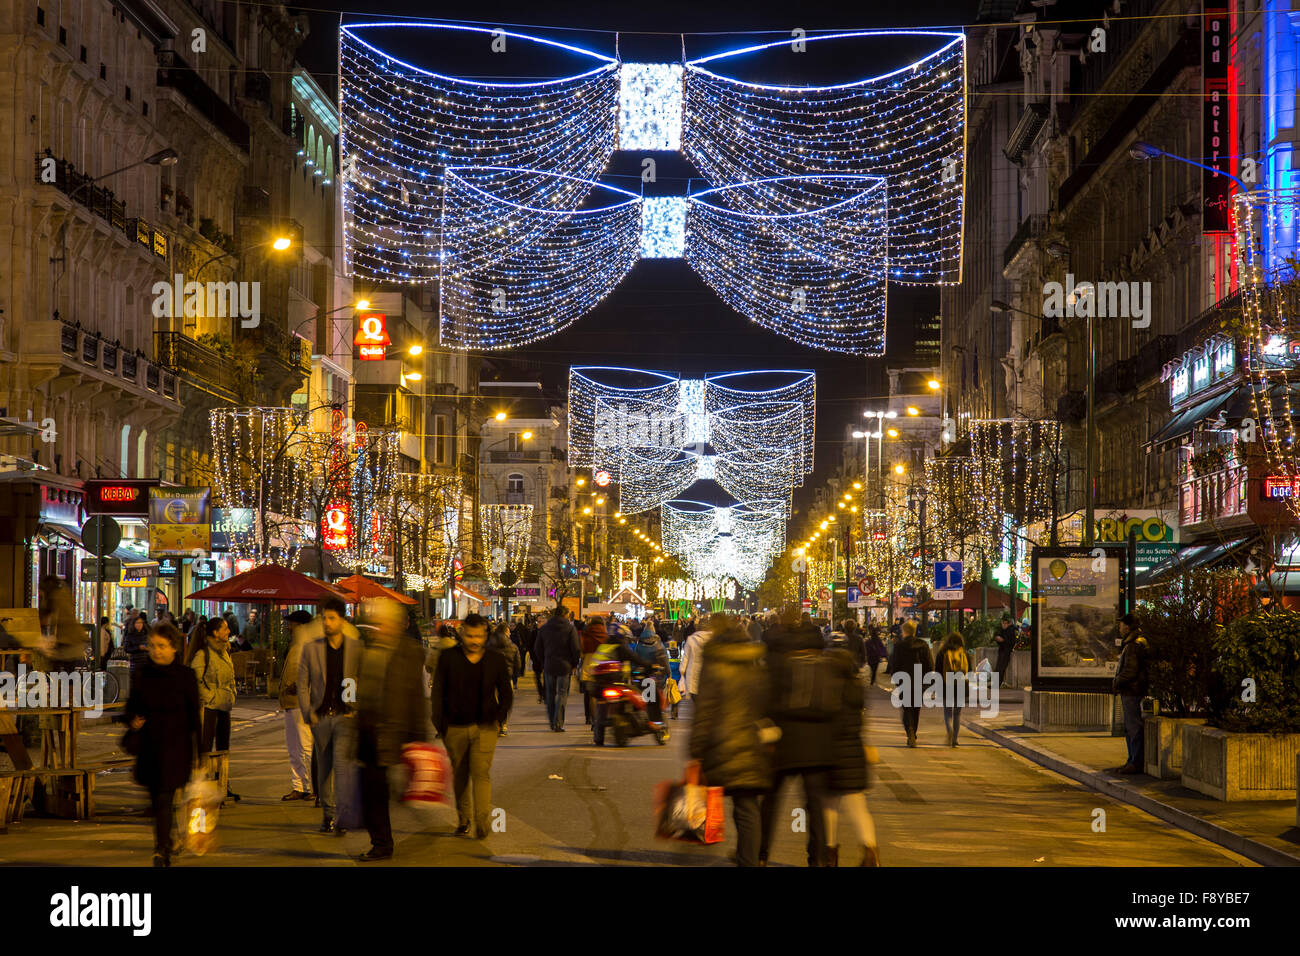 Christmas time in Brussels, Belgium, Christmas markets and illumination in the old town, - Stock Image